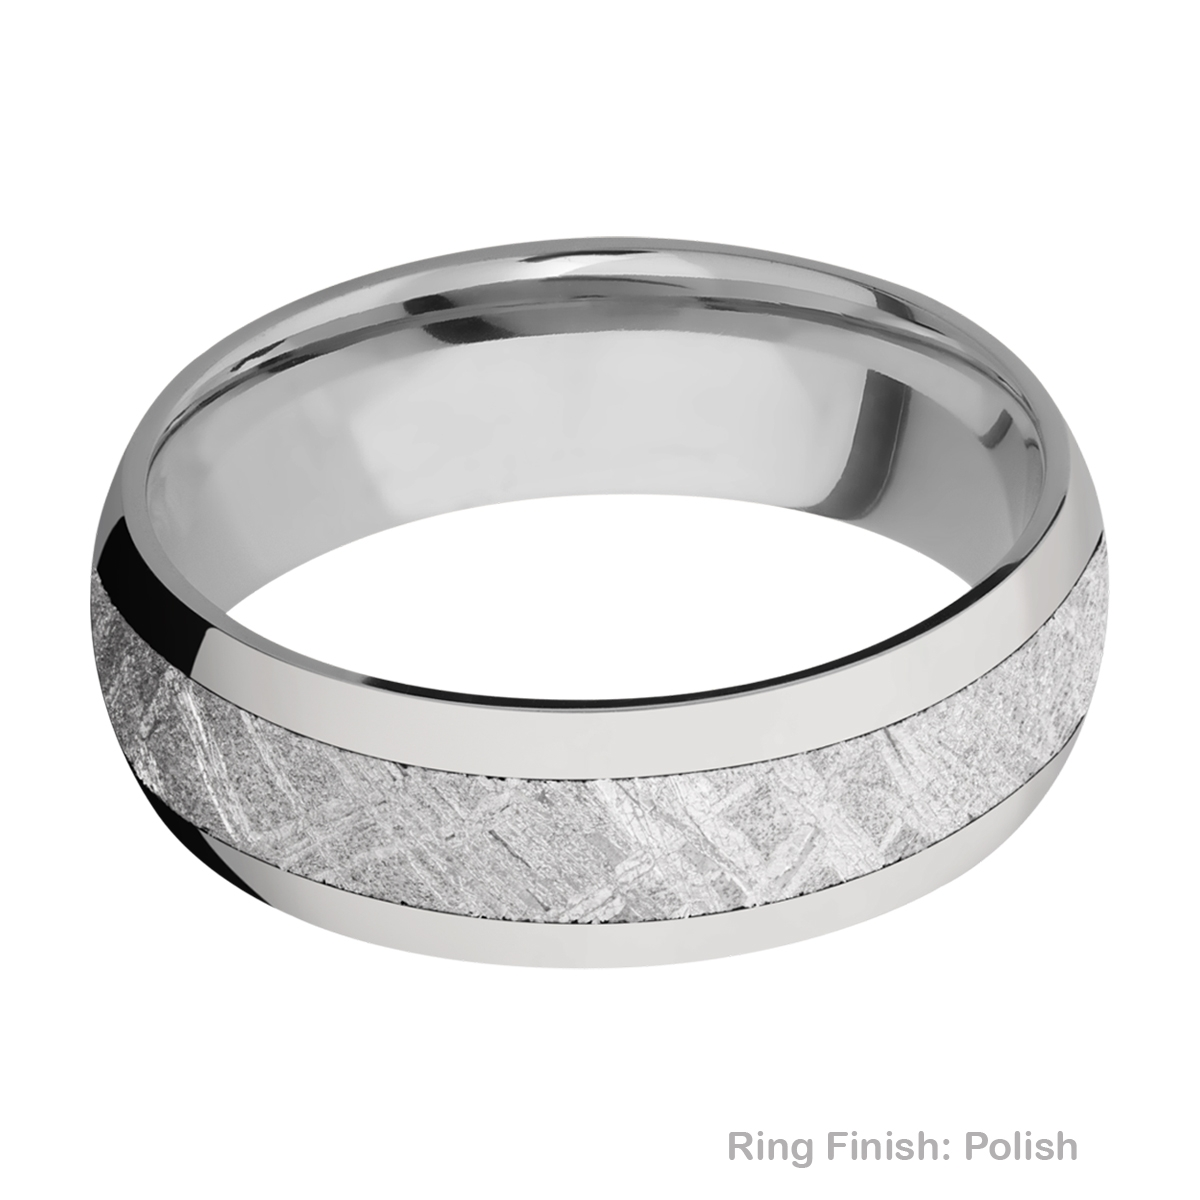 Lashbrook 7D14/METEORITE Titanium Wedding Ring or Band Alternative View 3